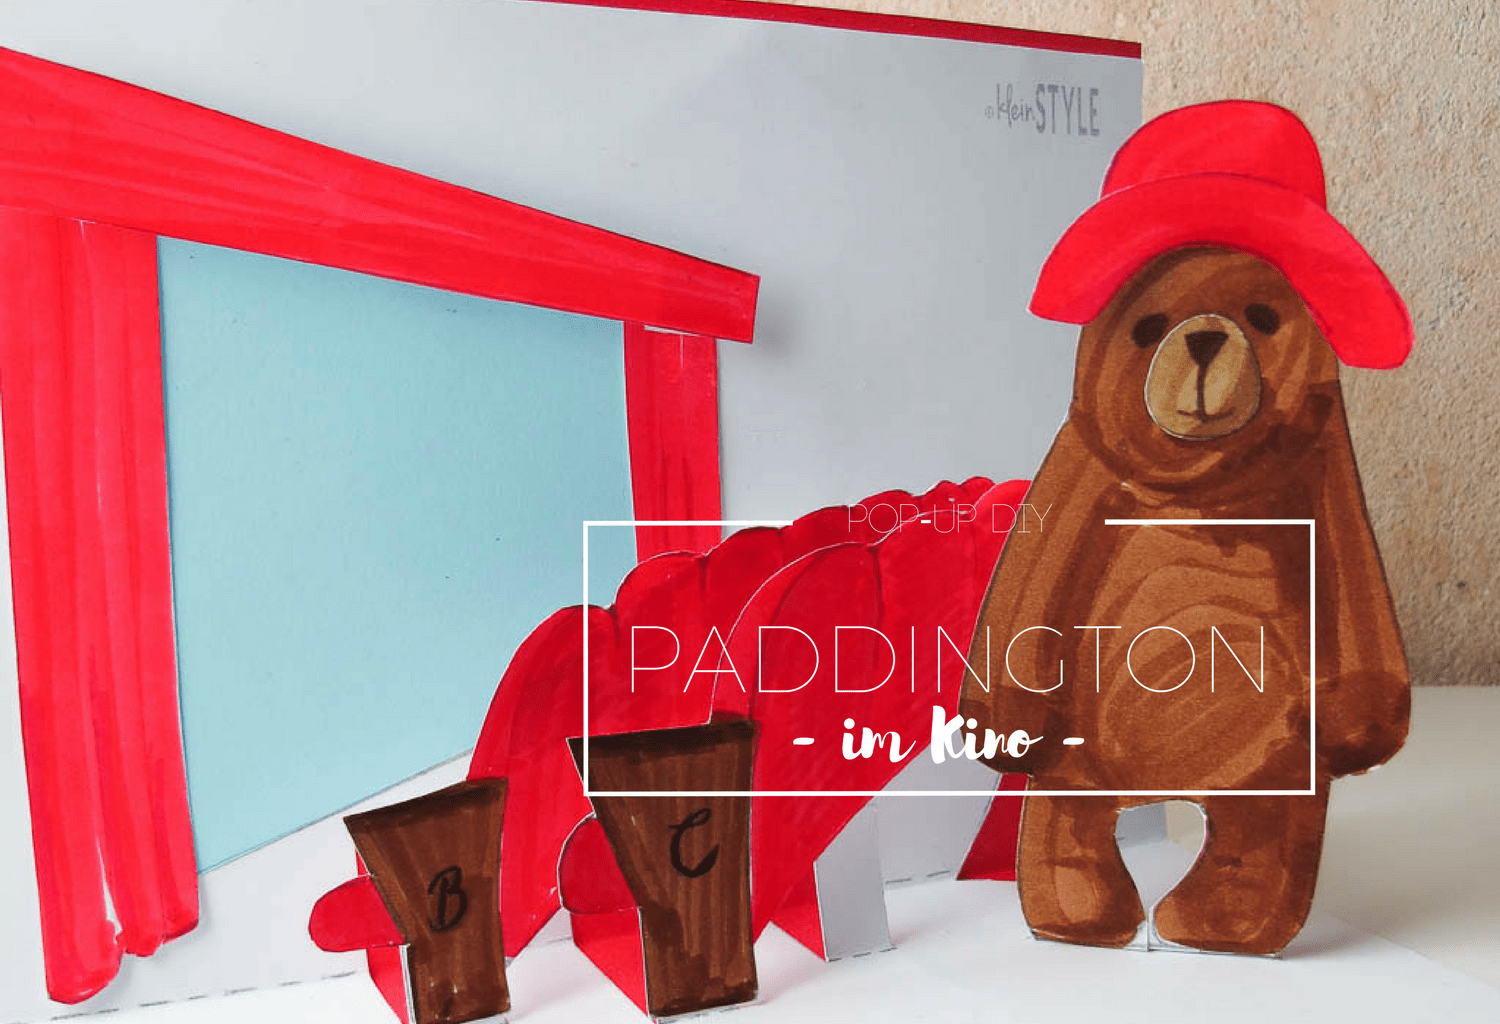 (Deutsch) Paddington :  Erinnerungen, Emotionen, Entzücken {inkl. gratis Pop-Up DIY}